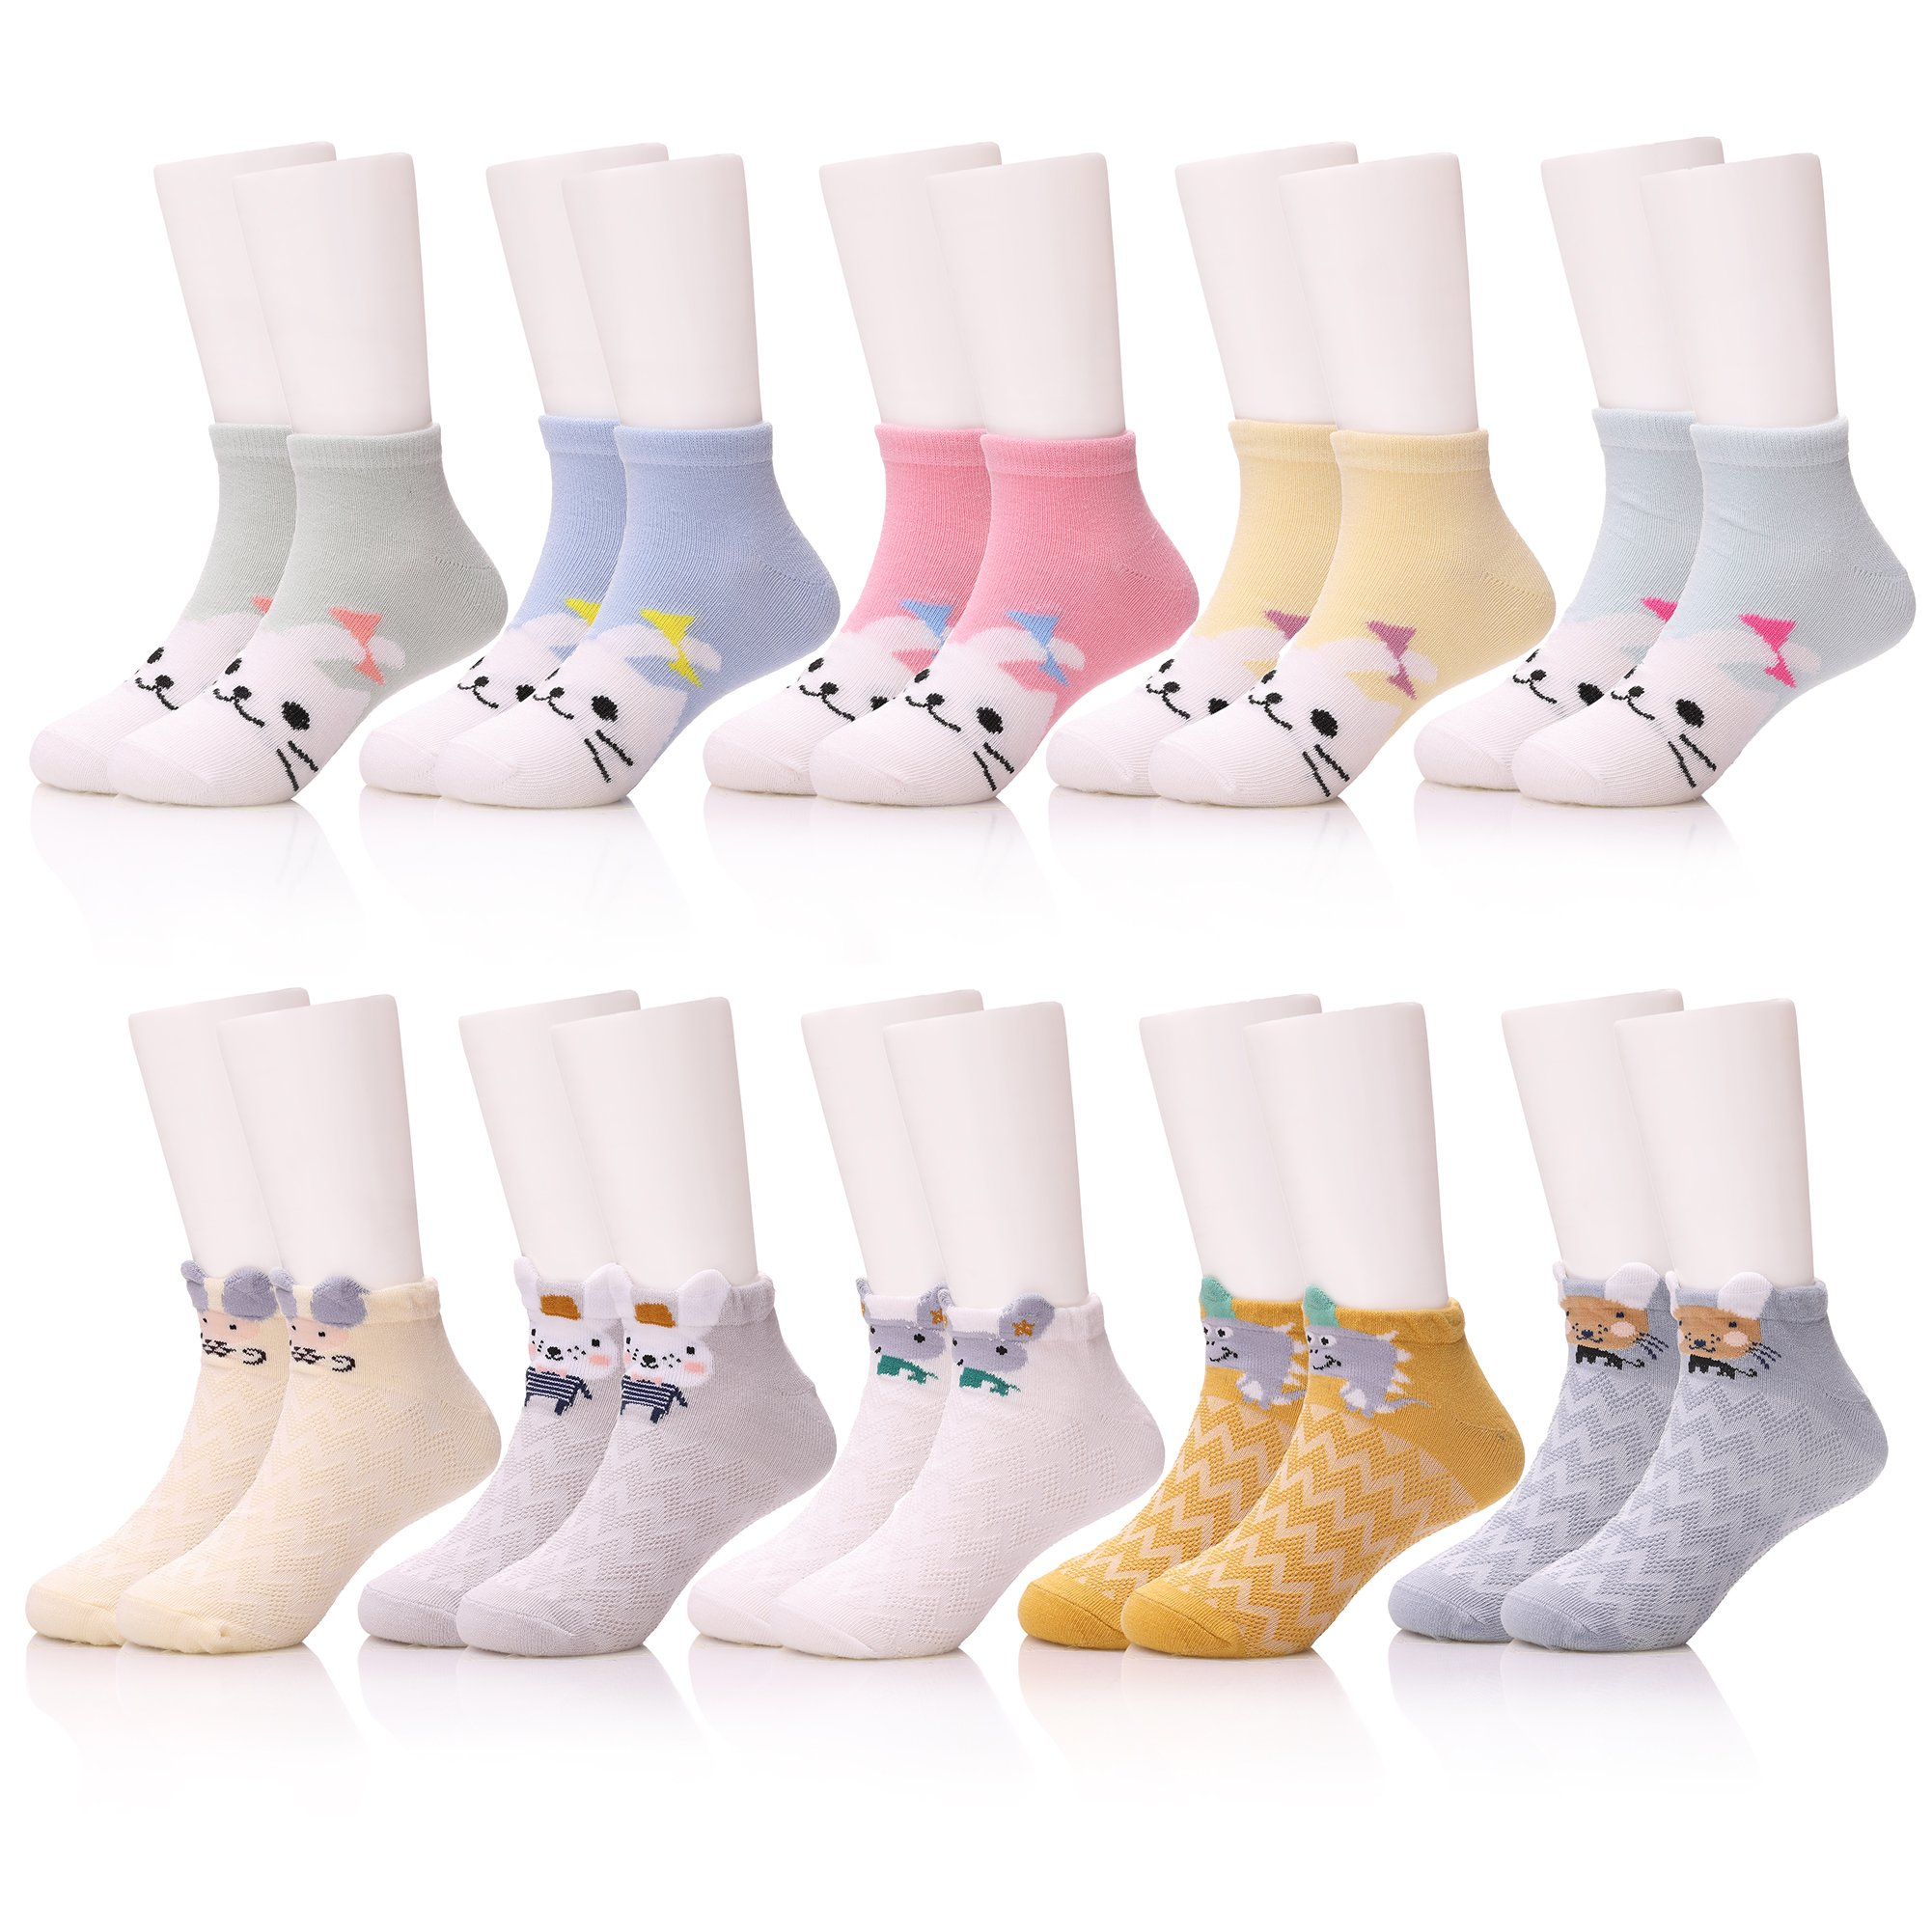 KAKAYAO 10 Pairs Baby Kids Girls Boys Toddler Socks Soft Breathable Cute Cotton Socks(Cartoon 2, XL(8-12 Year))